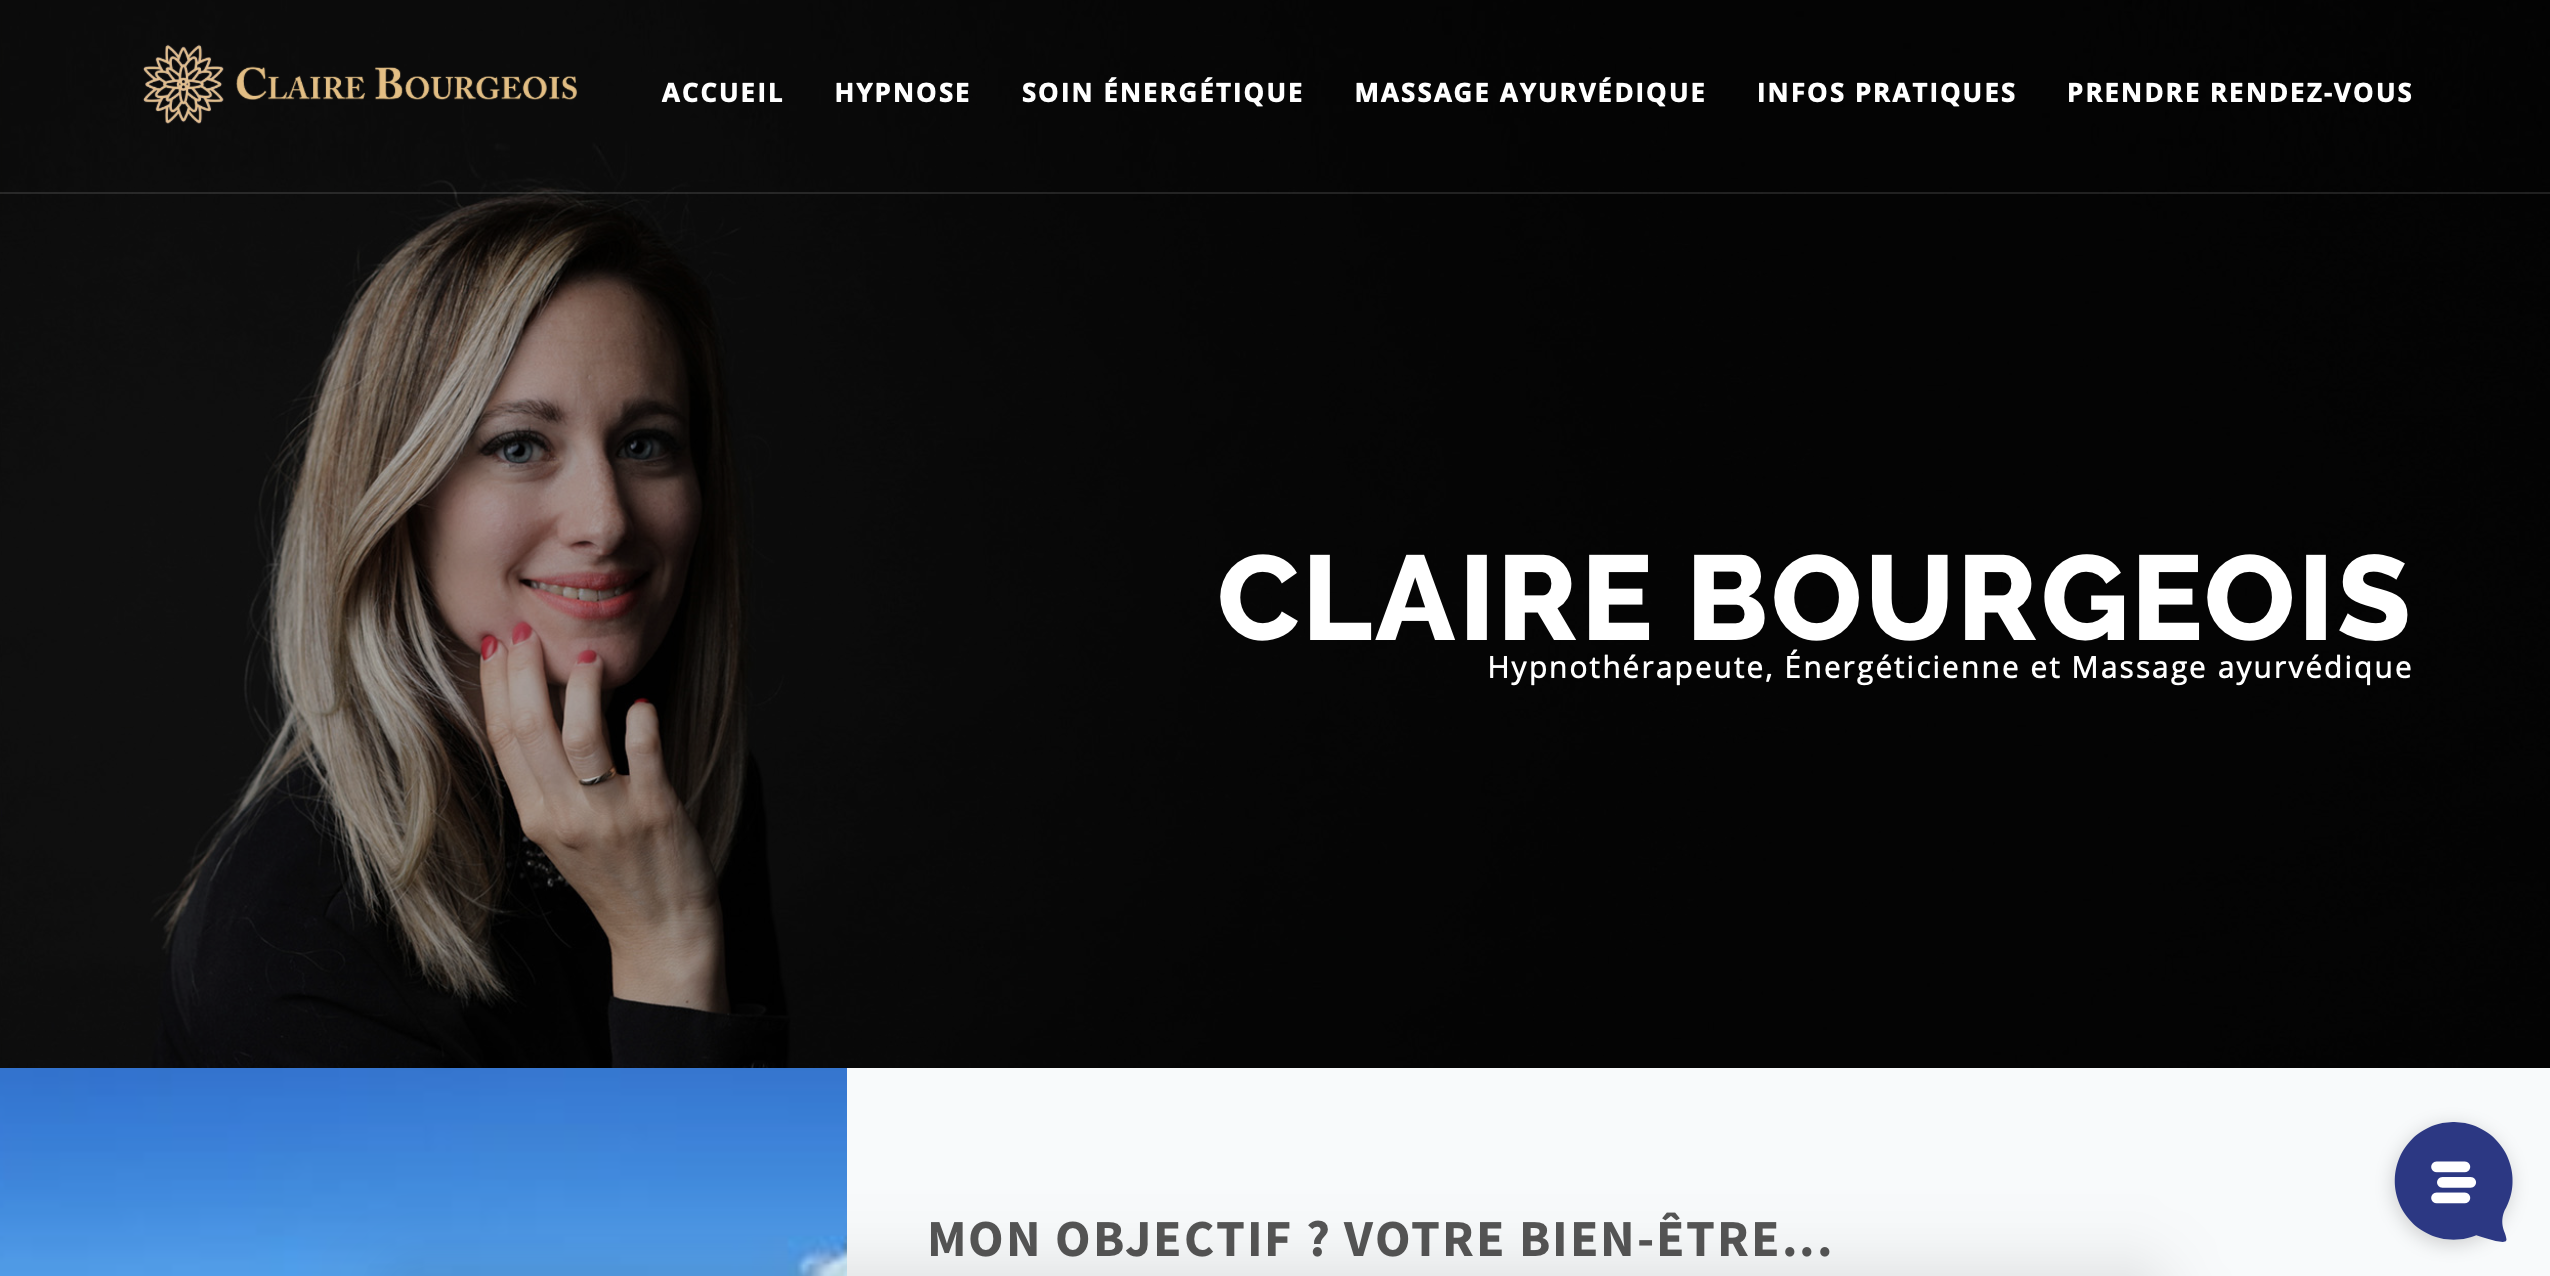 Claire Bourgeois